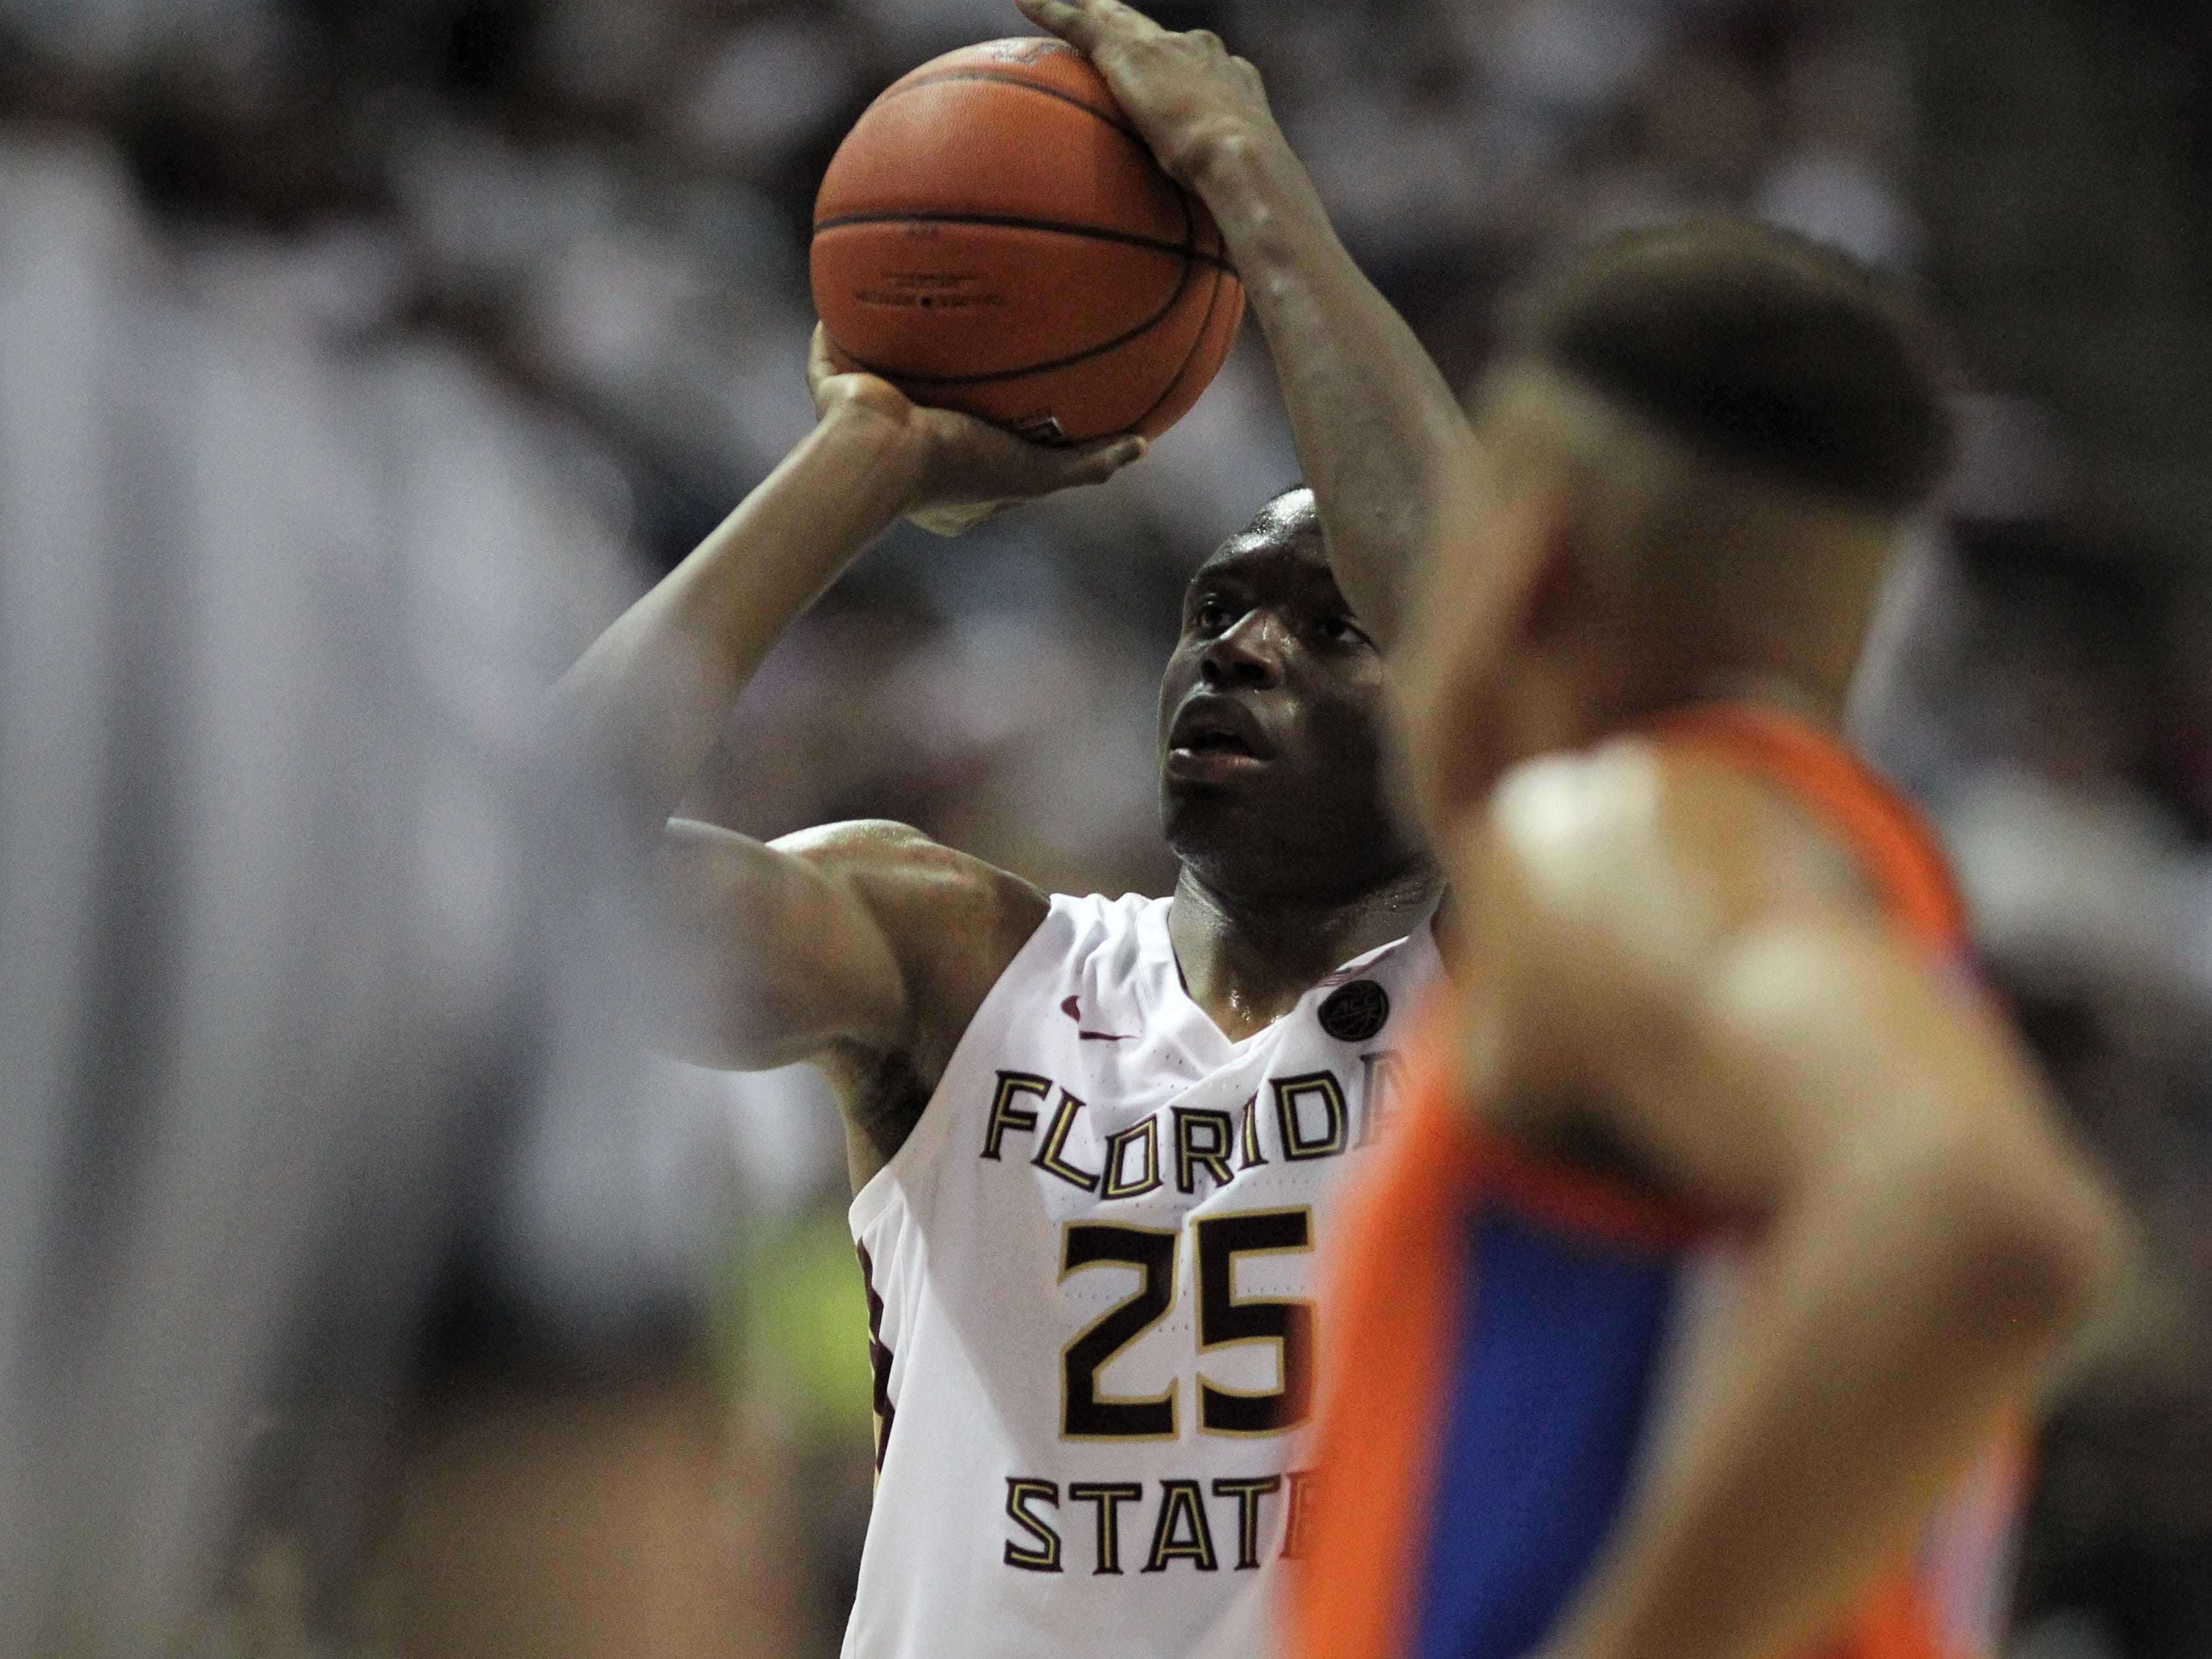 Florida State's Mfiondu Kabengele shoots a free throw during the Sunshine Showdown game against Florida on Tuesday at the Tucker Civic Center.